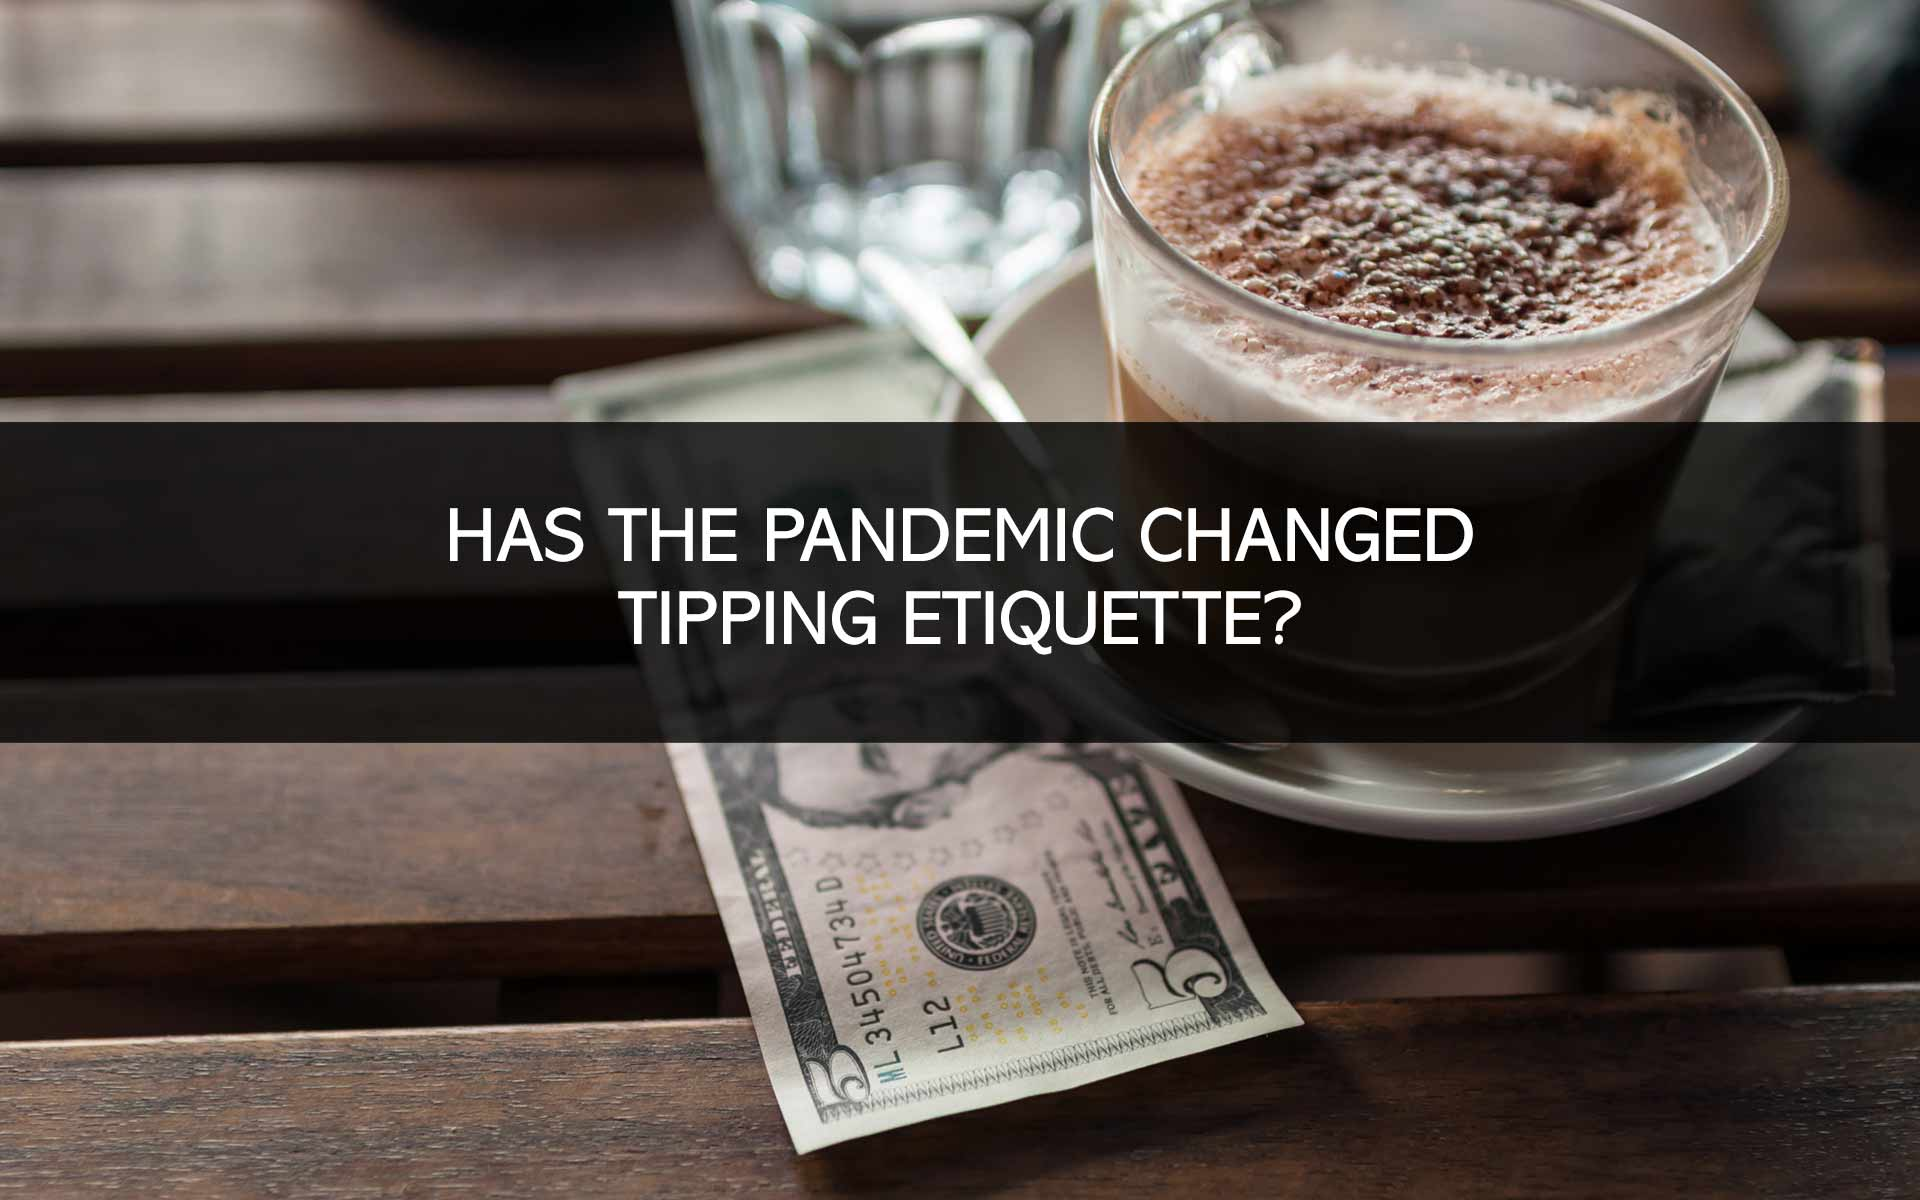 Has the Pandemic Changed Tipping Etiquette?